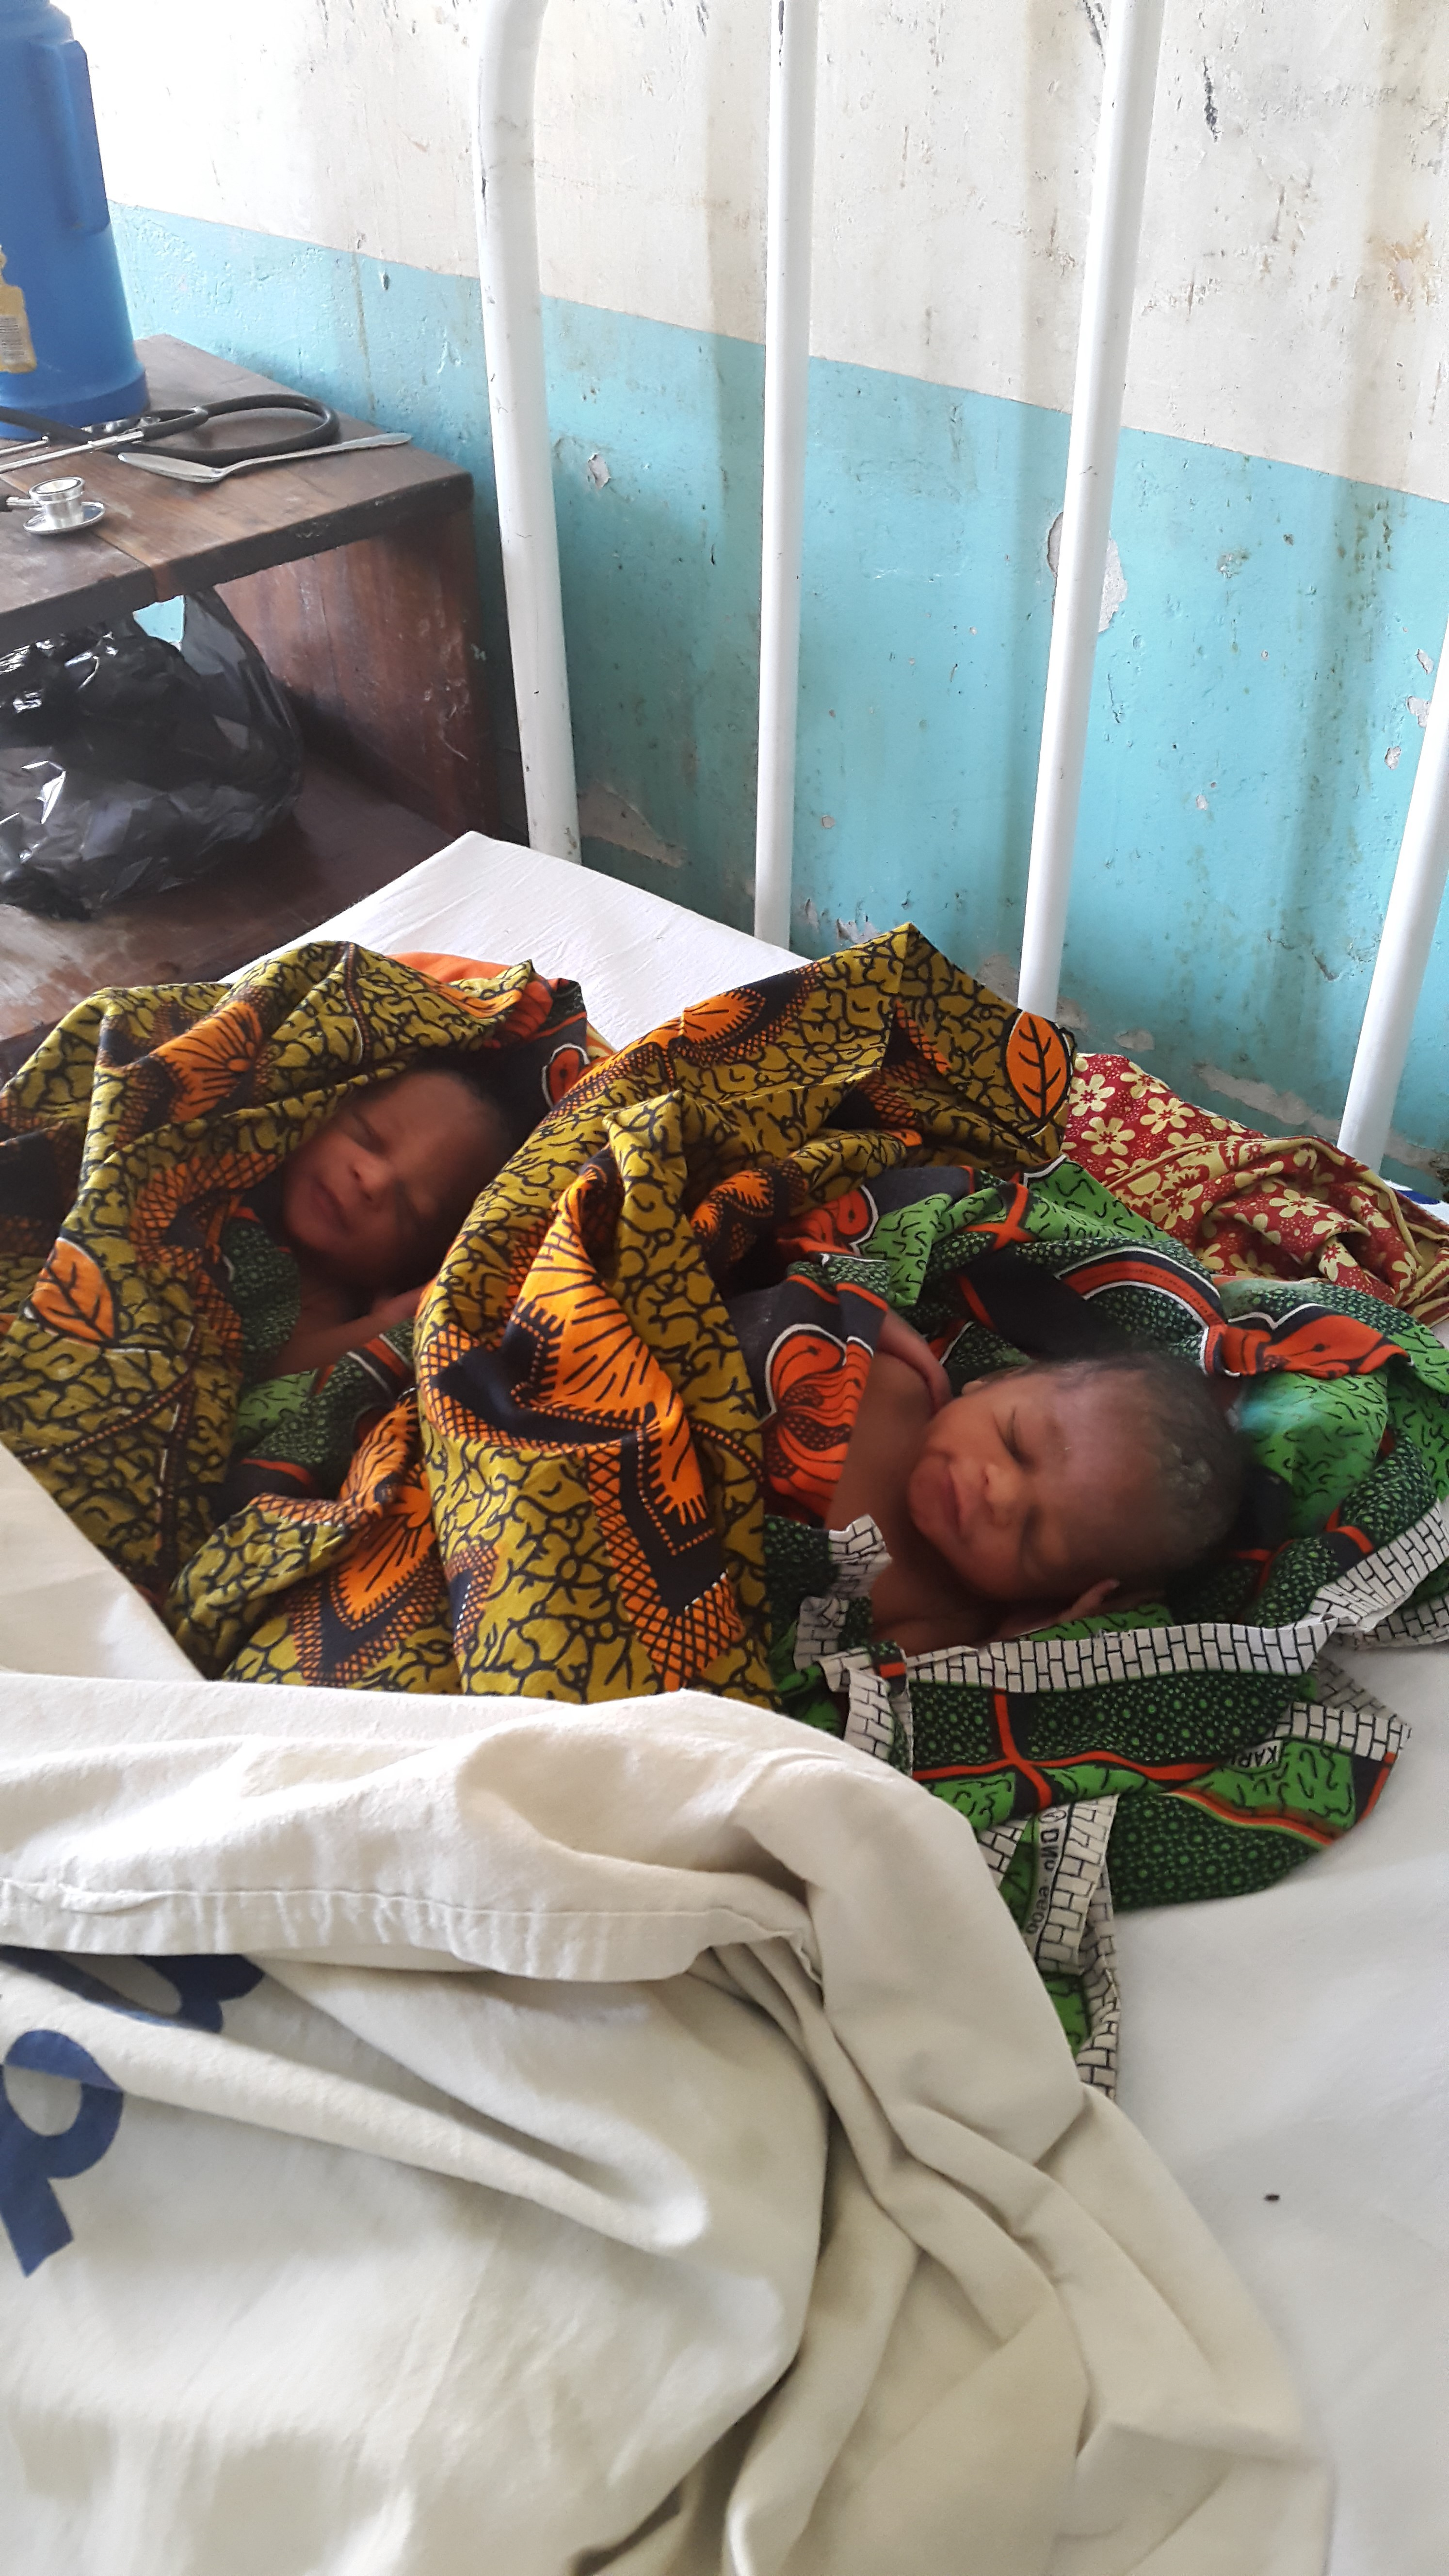 Comprehensive Emergency Obstetric and Newborn Care: The